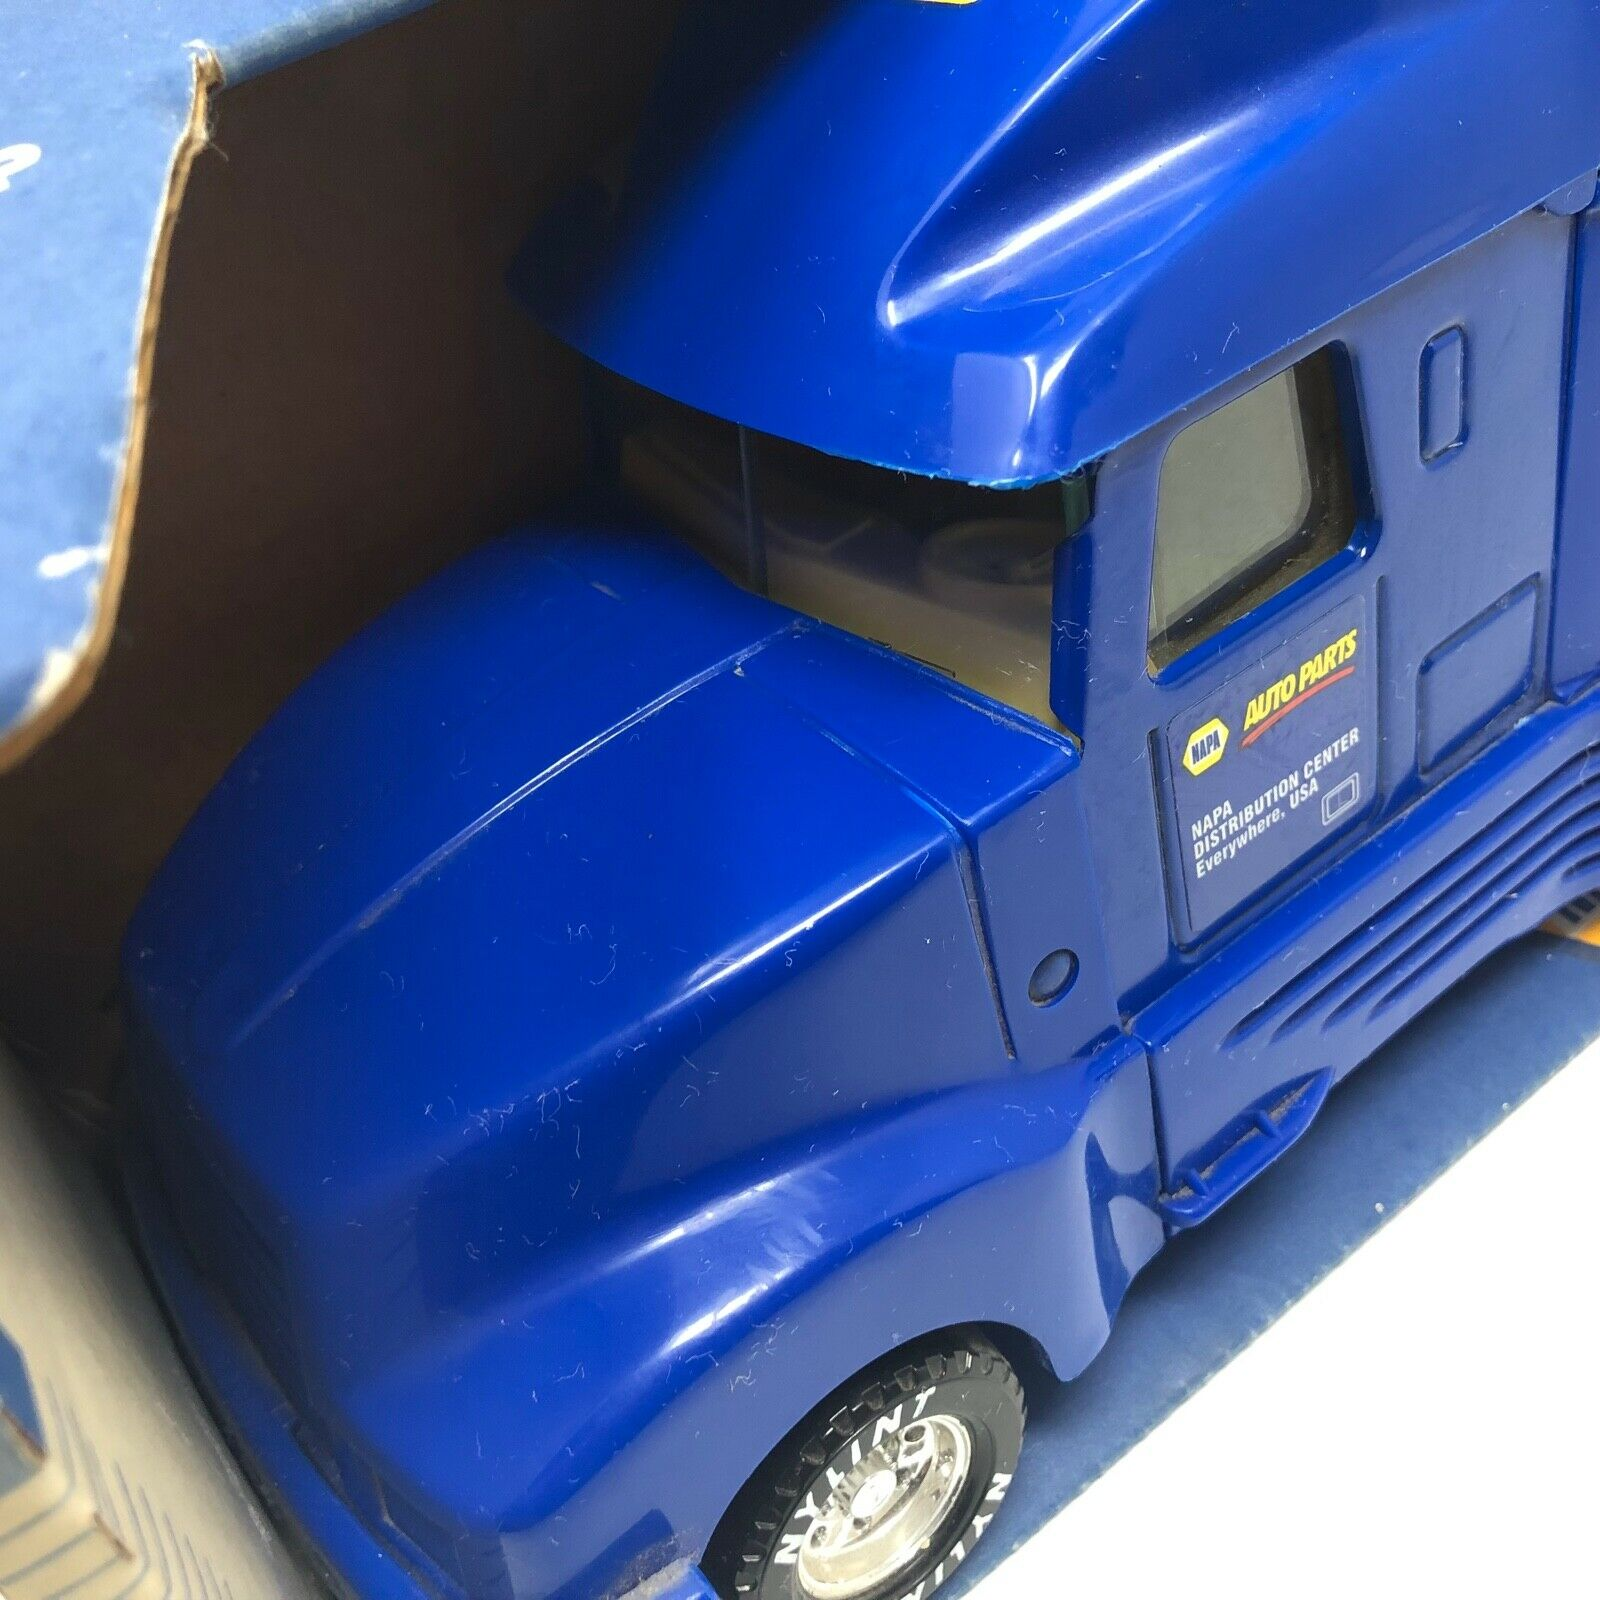 NIB Nylint Napa Tractor Trailer Auto Parts USA Made Made Made Collectors 1995 Collectors 4e2cac